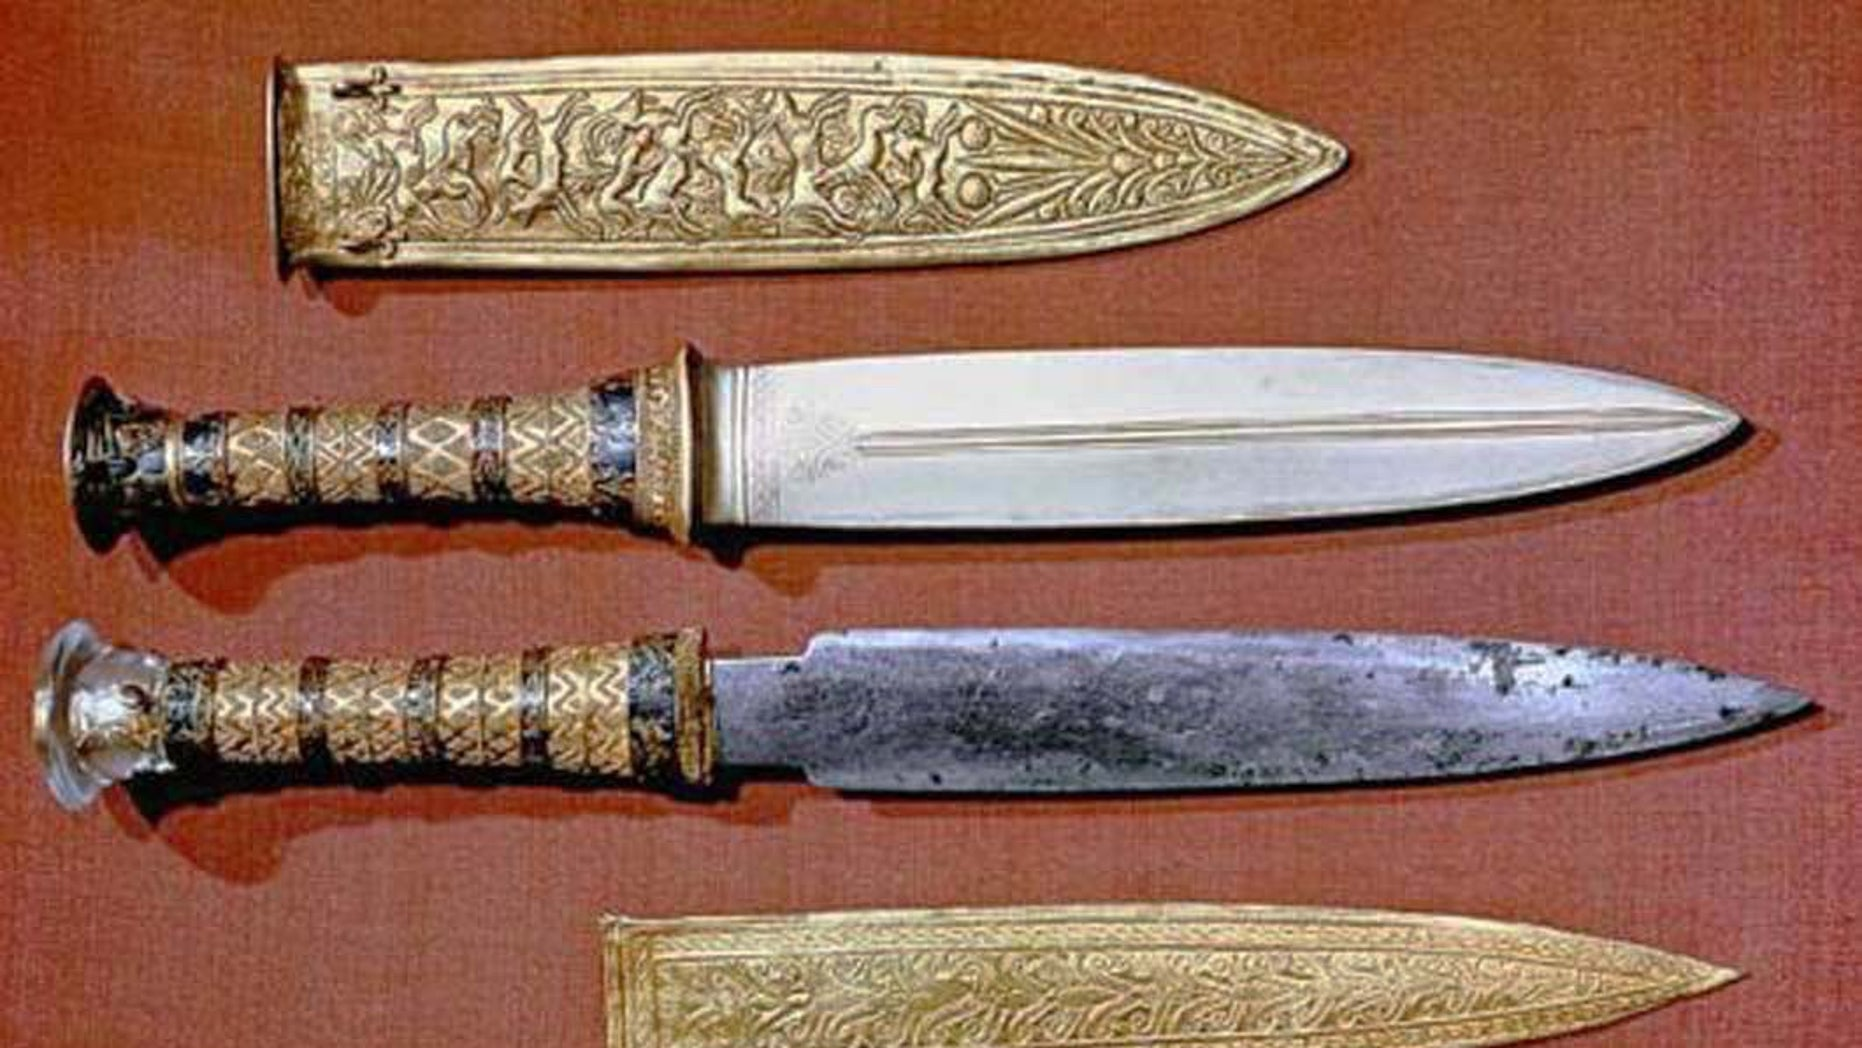 The iron dagger found in the tomb of the Egyptian pharaoh Tutankhamun dates to around 1350 B.C., about 200 years before the Iron Age.